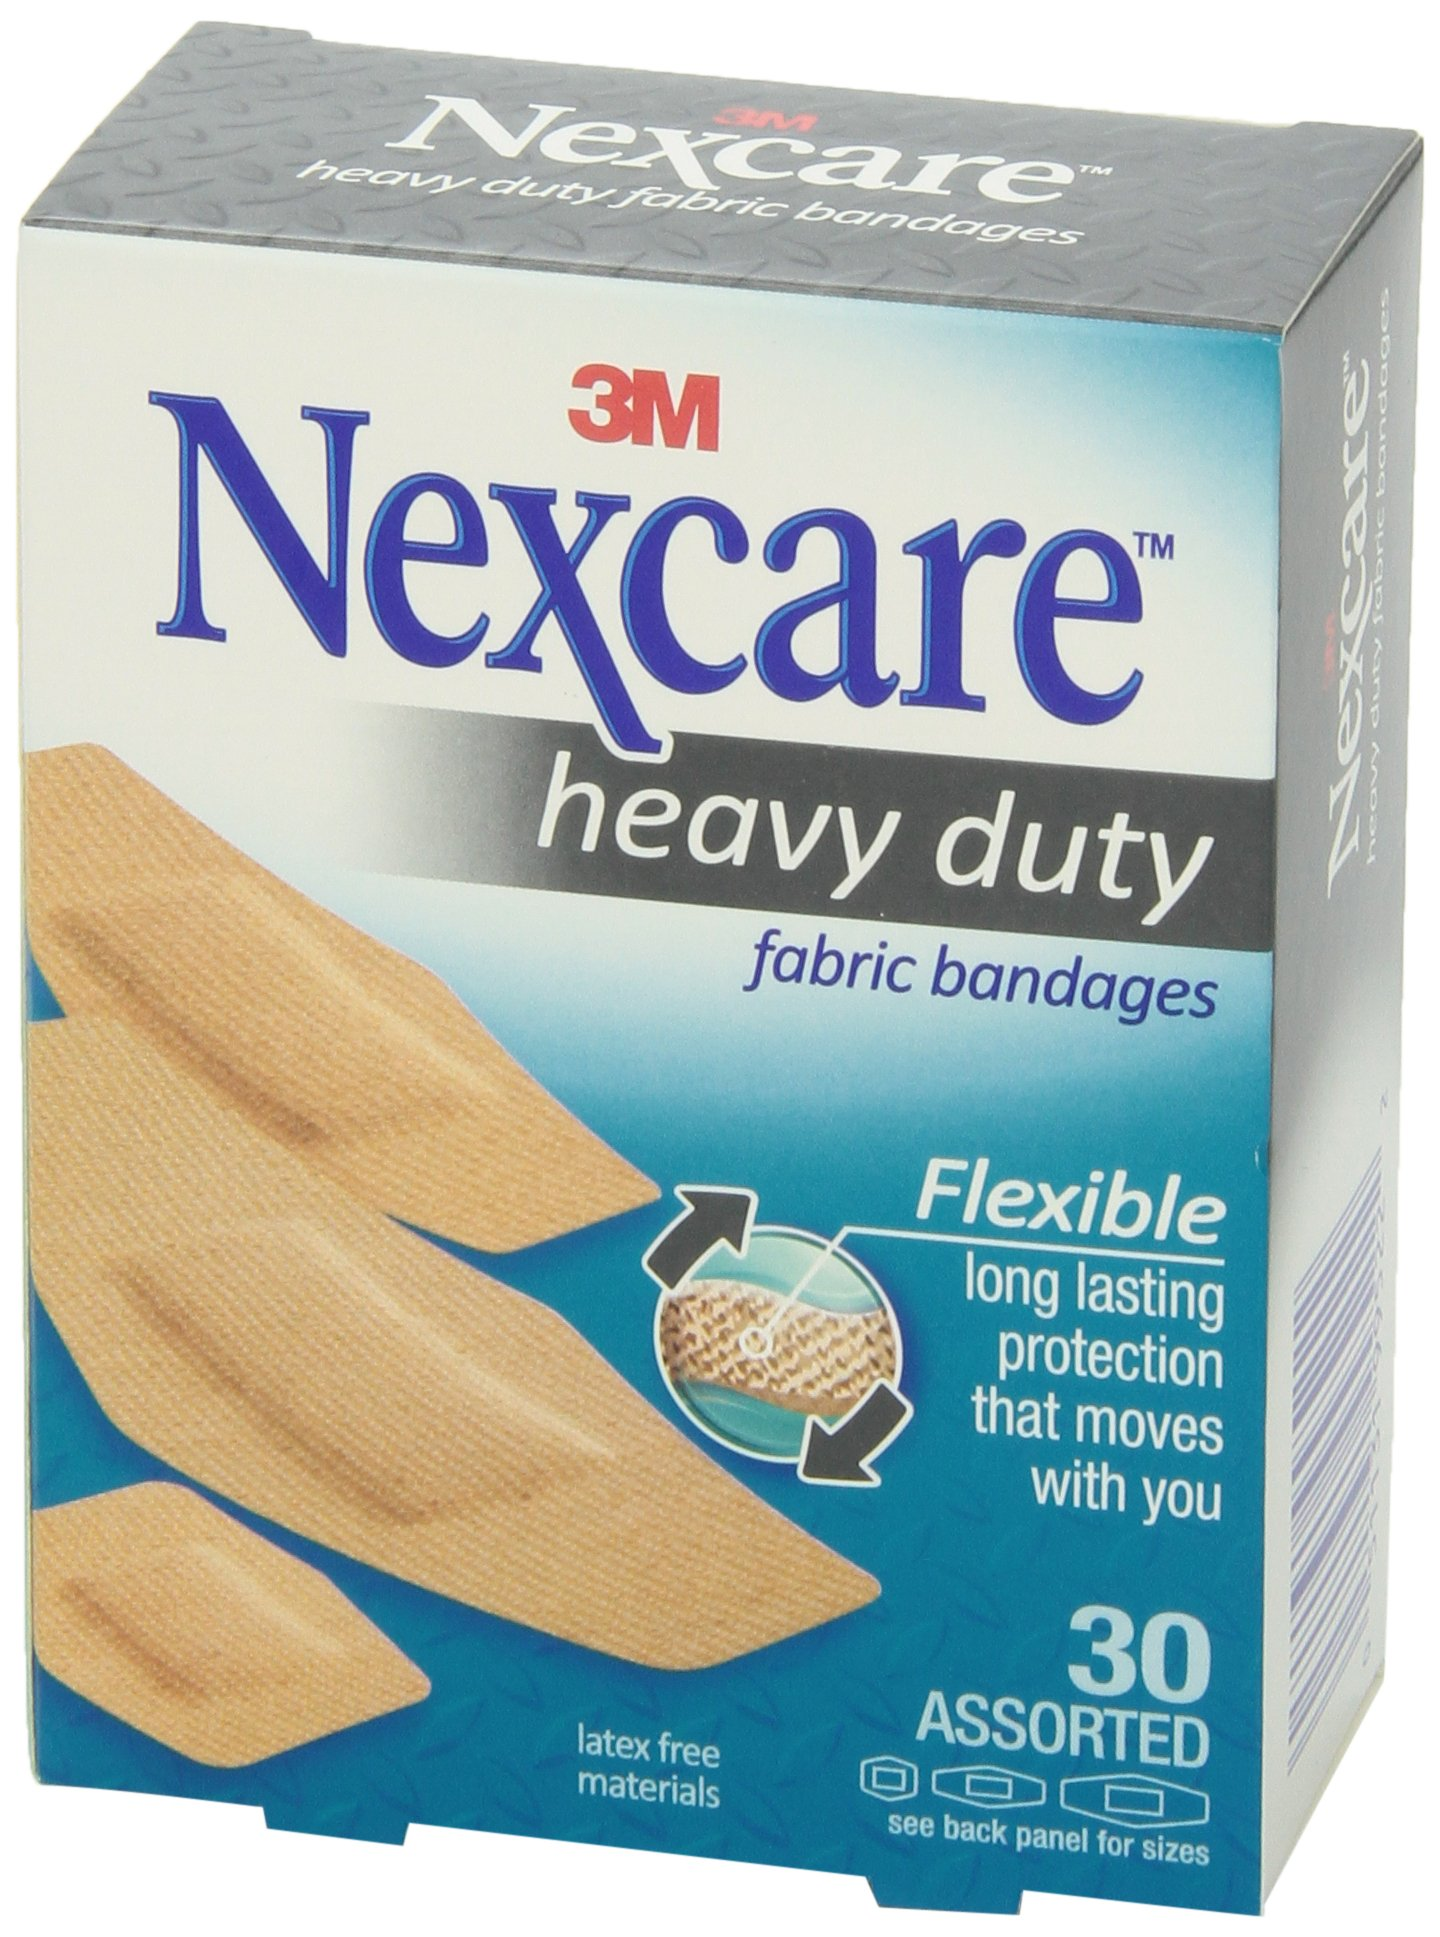 Nexcare Heavy Duty Fabric Bandages, Conforms to Fingers, Elbows, and Knees, For Extreme Sports and Yard Work, Assorted Sizes, 30 Bandages (Pack Of 4)